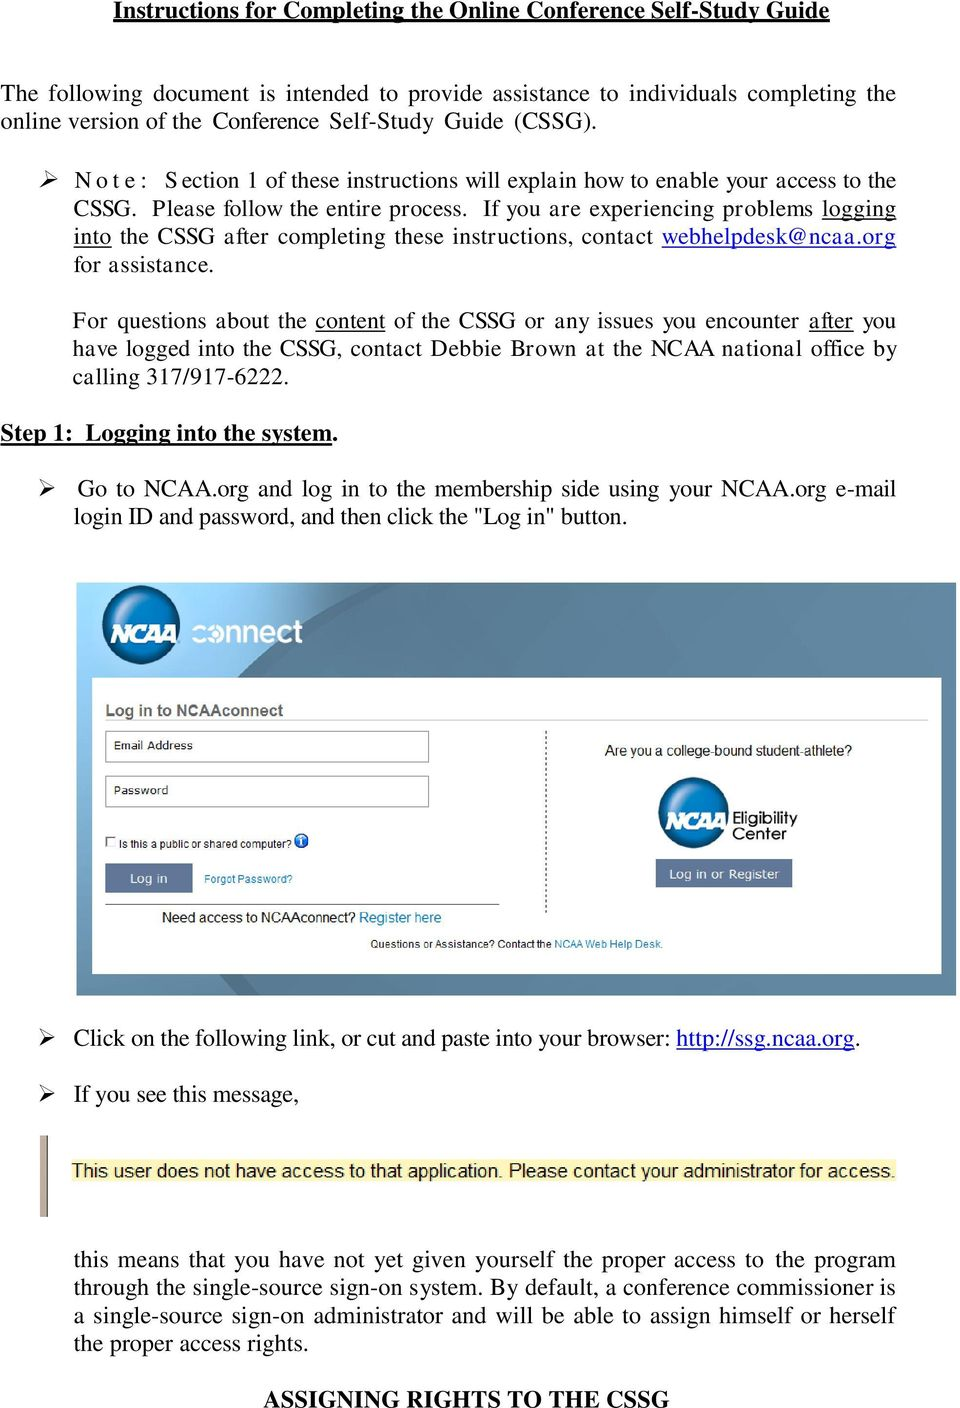 If you are experiencing problems logging into the CSSG after completing these instructions, contact webhelpdesk@ncaa.org for assistance.